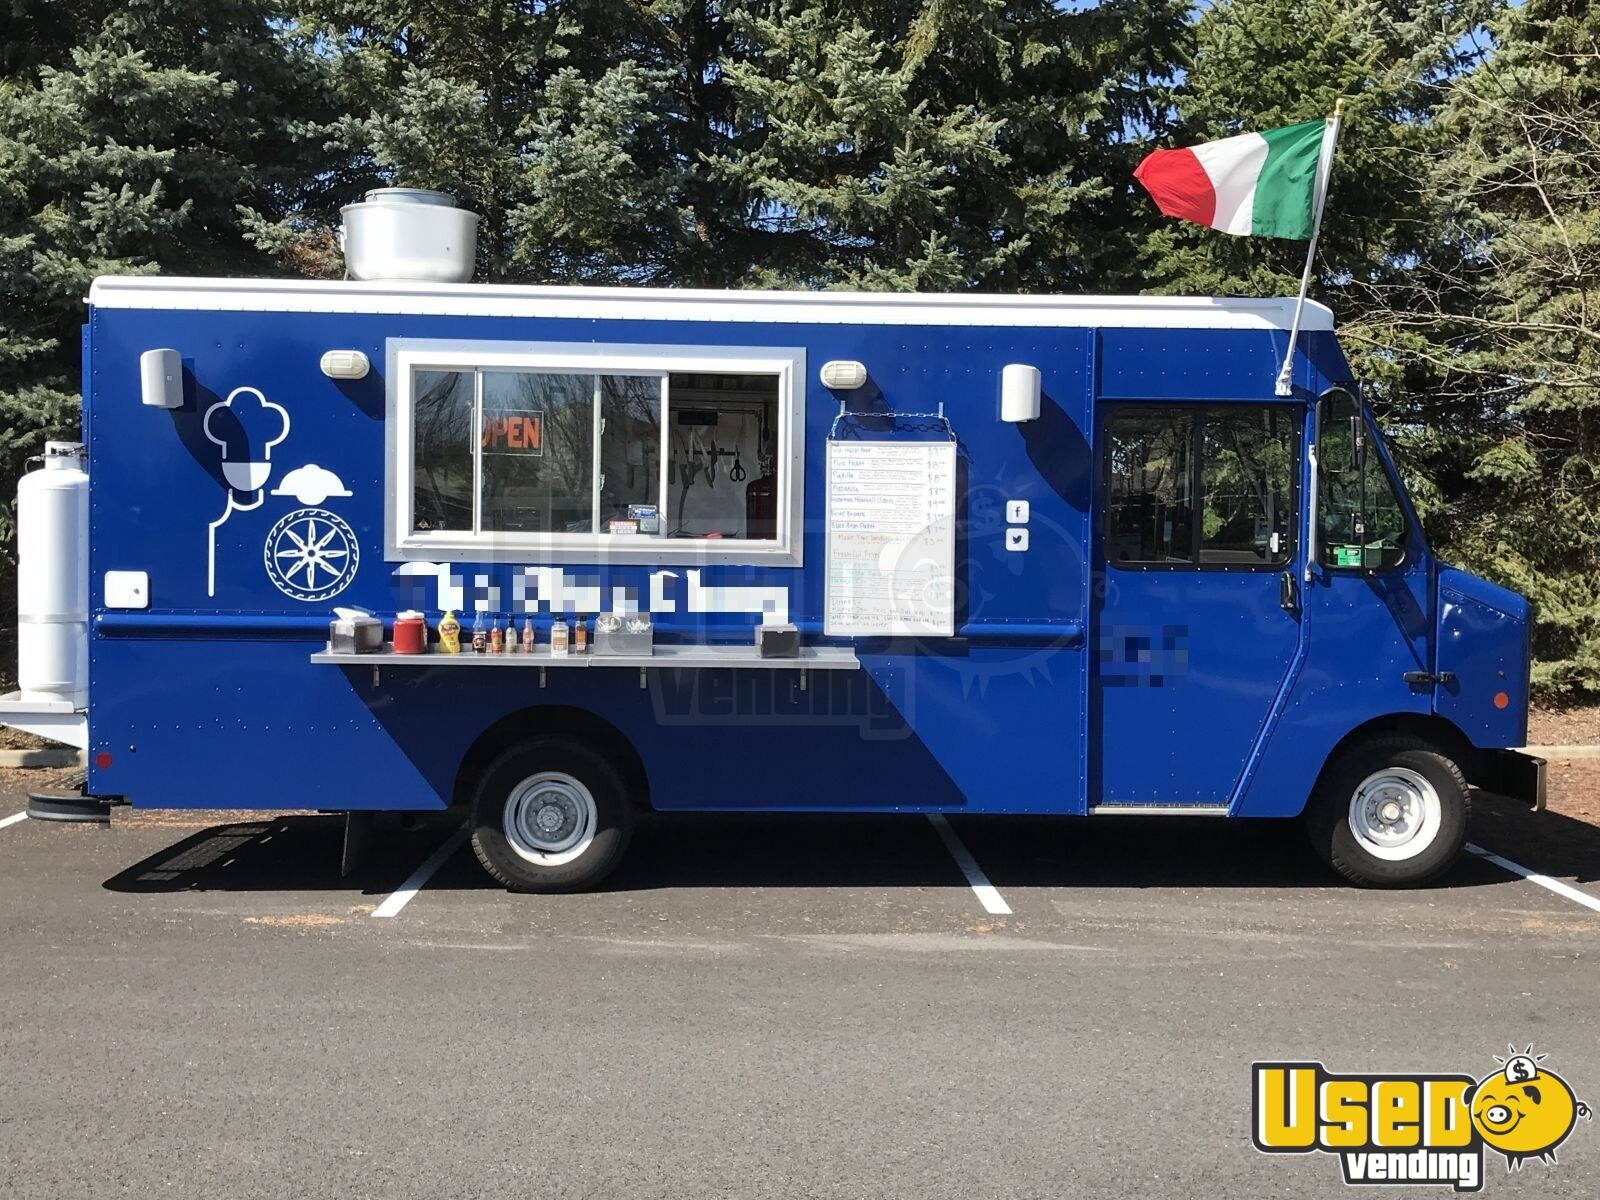 Used Trucks For Sale In Ohio >> Ford Food Truck For Sale In Ohio